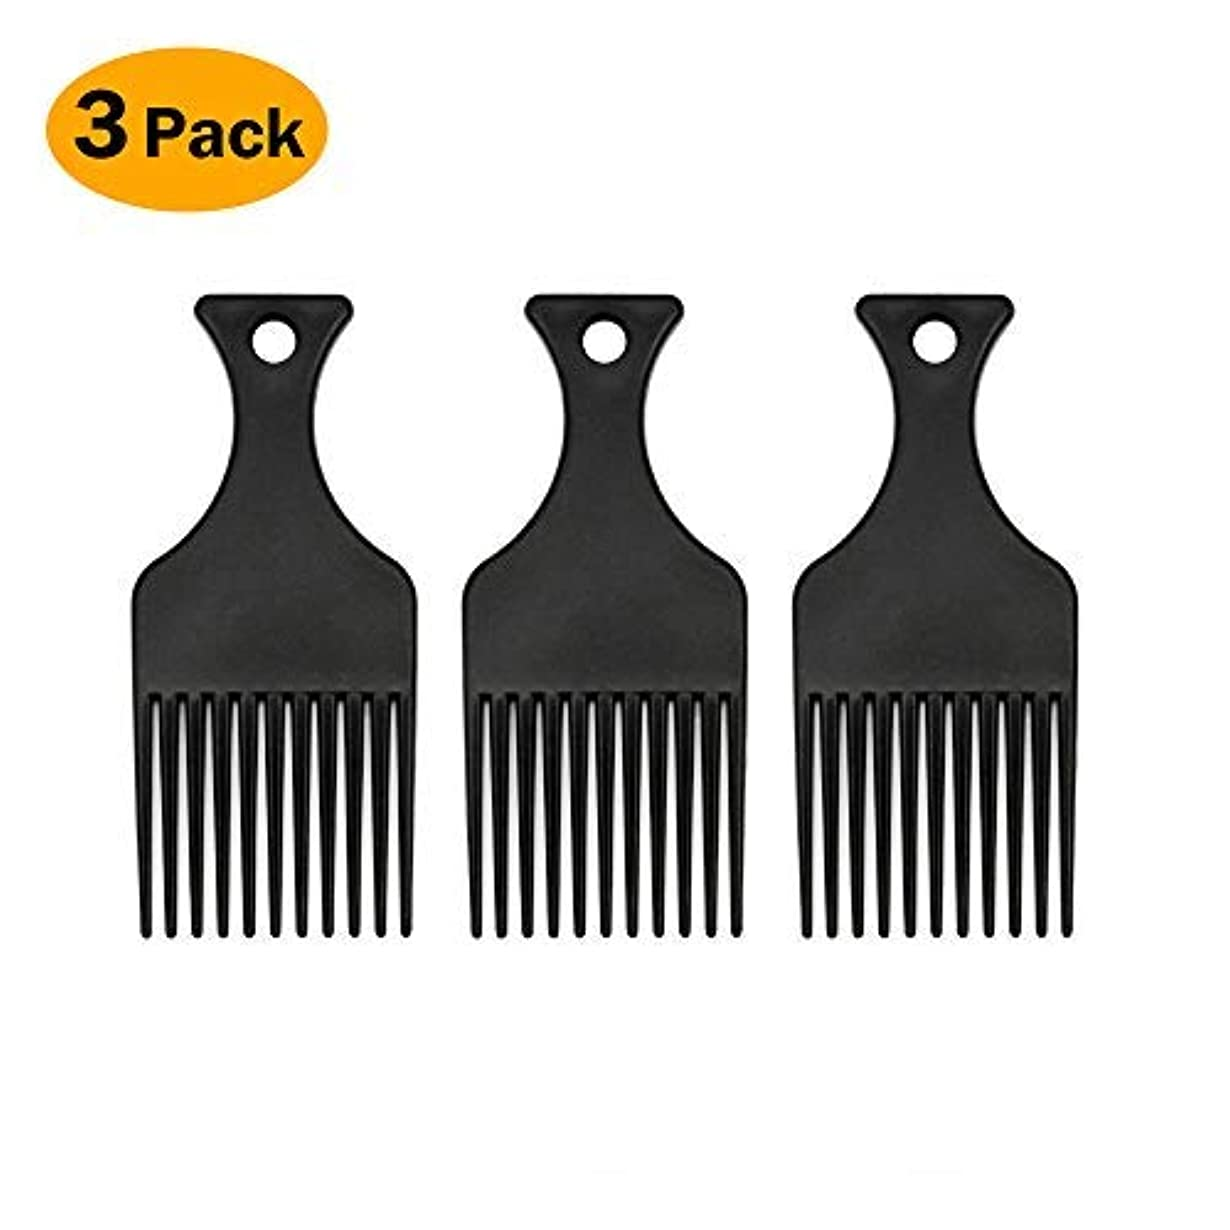 でも下着登録Bewave Plastic Afro Pik Lift Hair Comb Detangle Wig Braid Black Man Styling Tool (3Pcs) (Small) [並行輸入品]